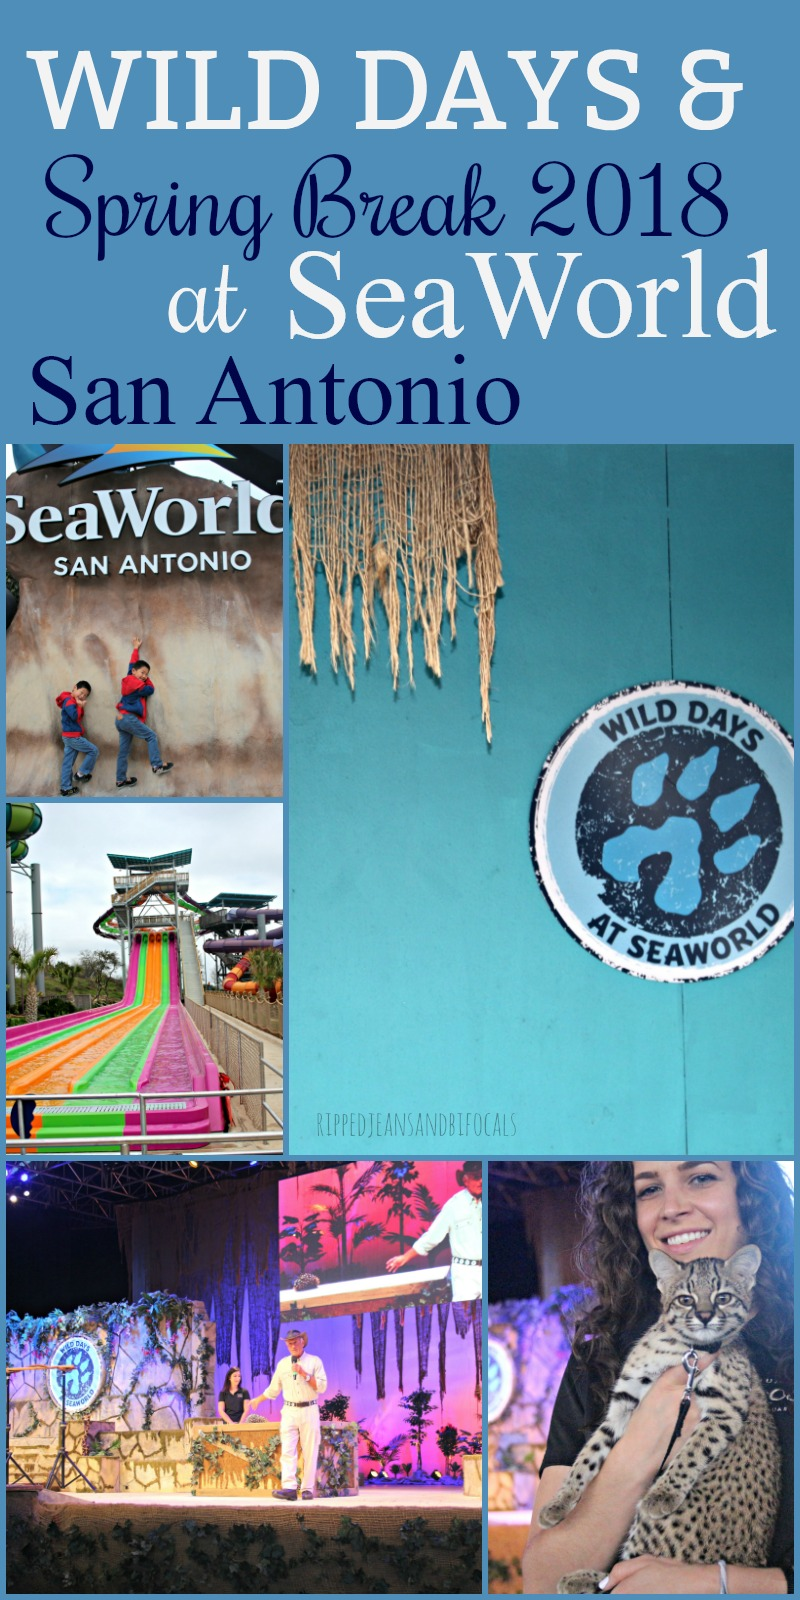 Visit SeaWorld San Antonio during spring break 2018